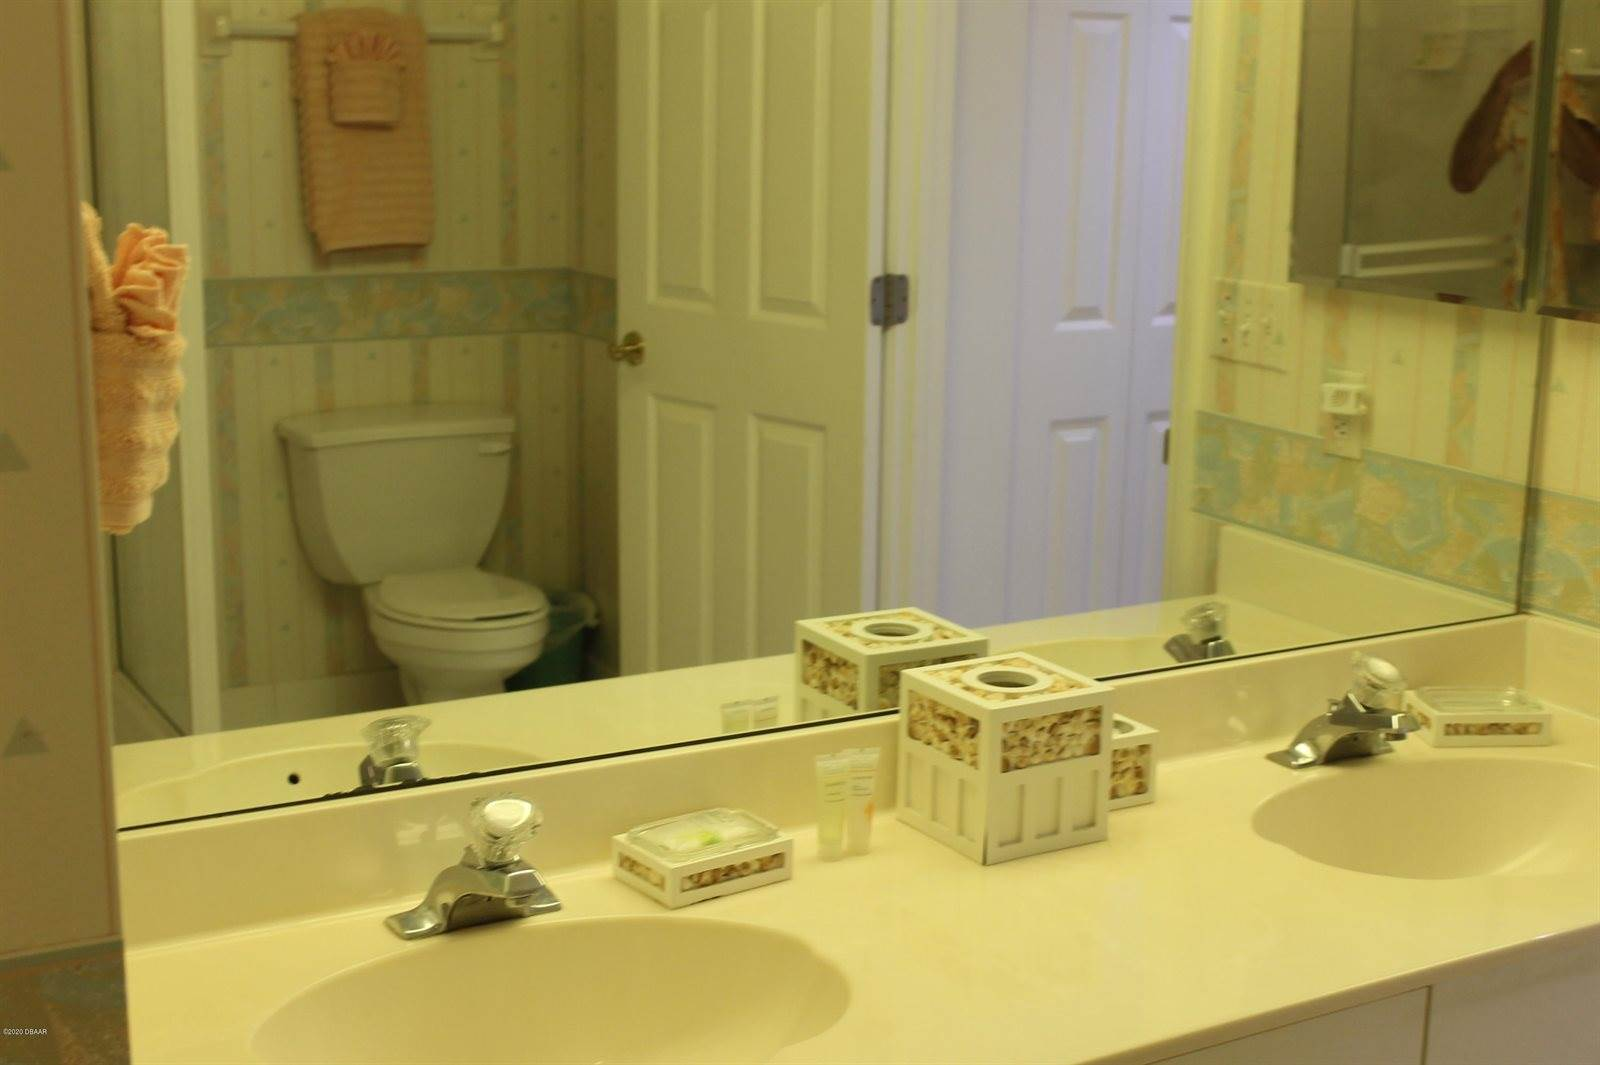 4555 S. Atlantic Ave, #4702, Ponce Inlet, FL 32127